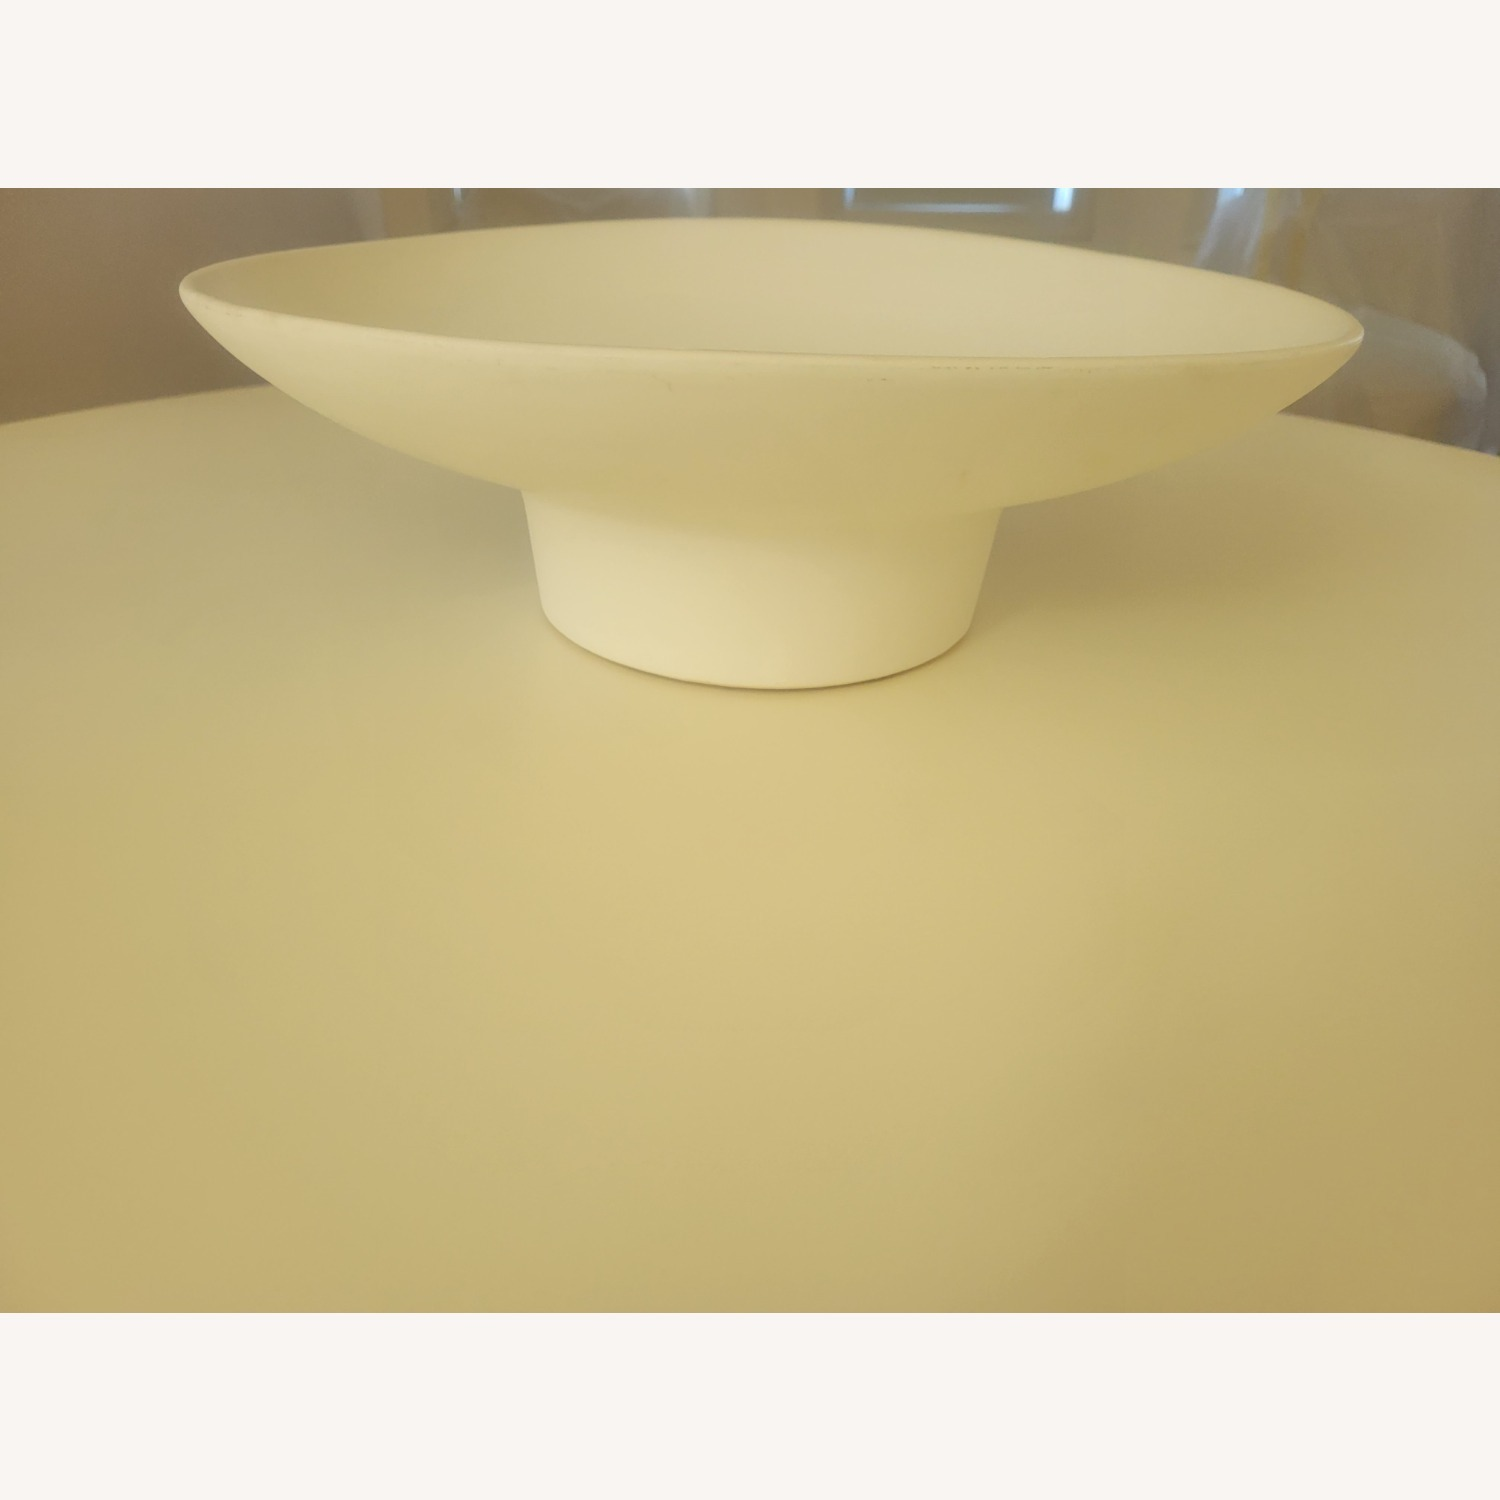 West Elm Natural White Ceramic Footed Centerpiece Bowl - image-1